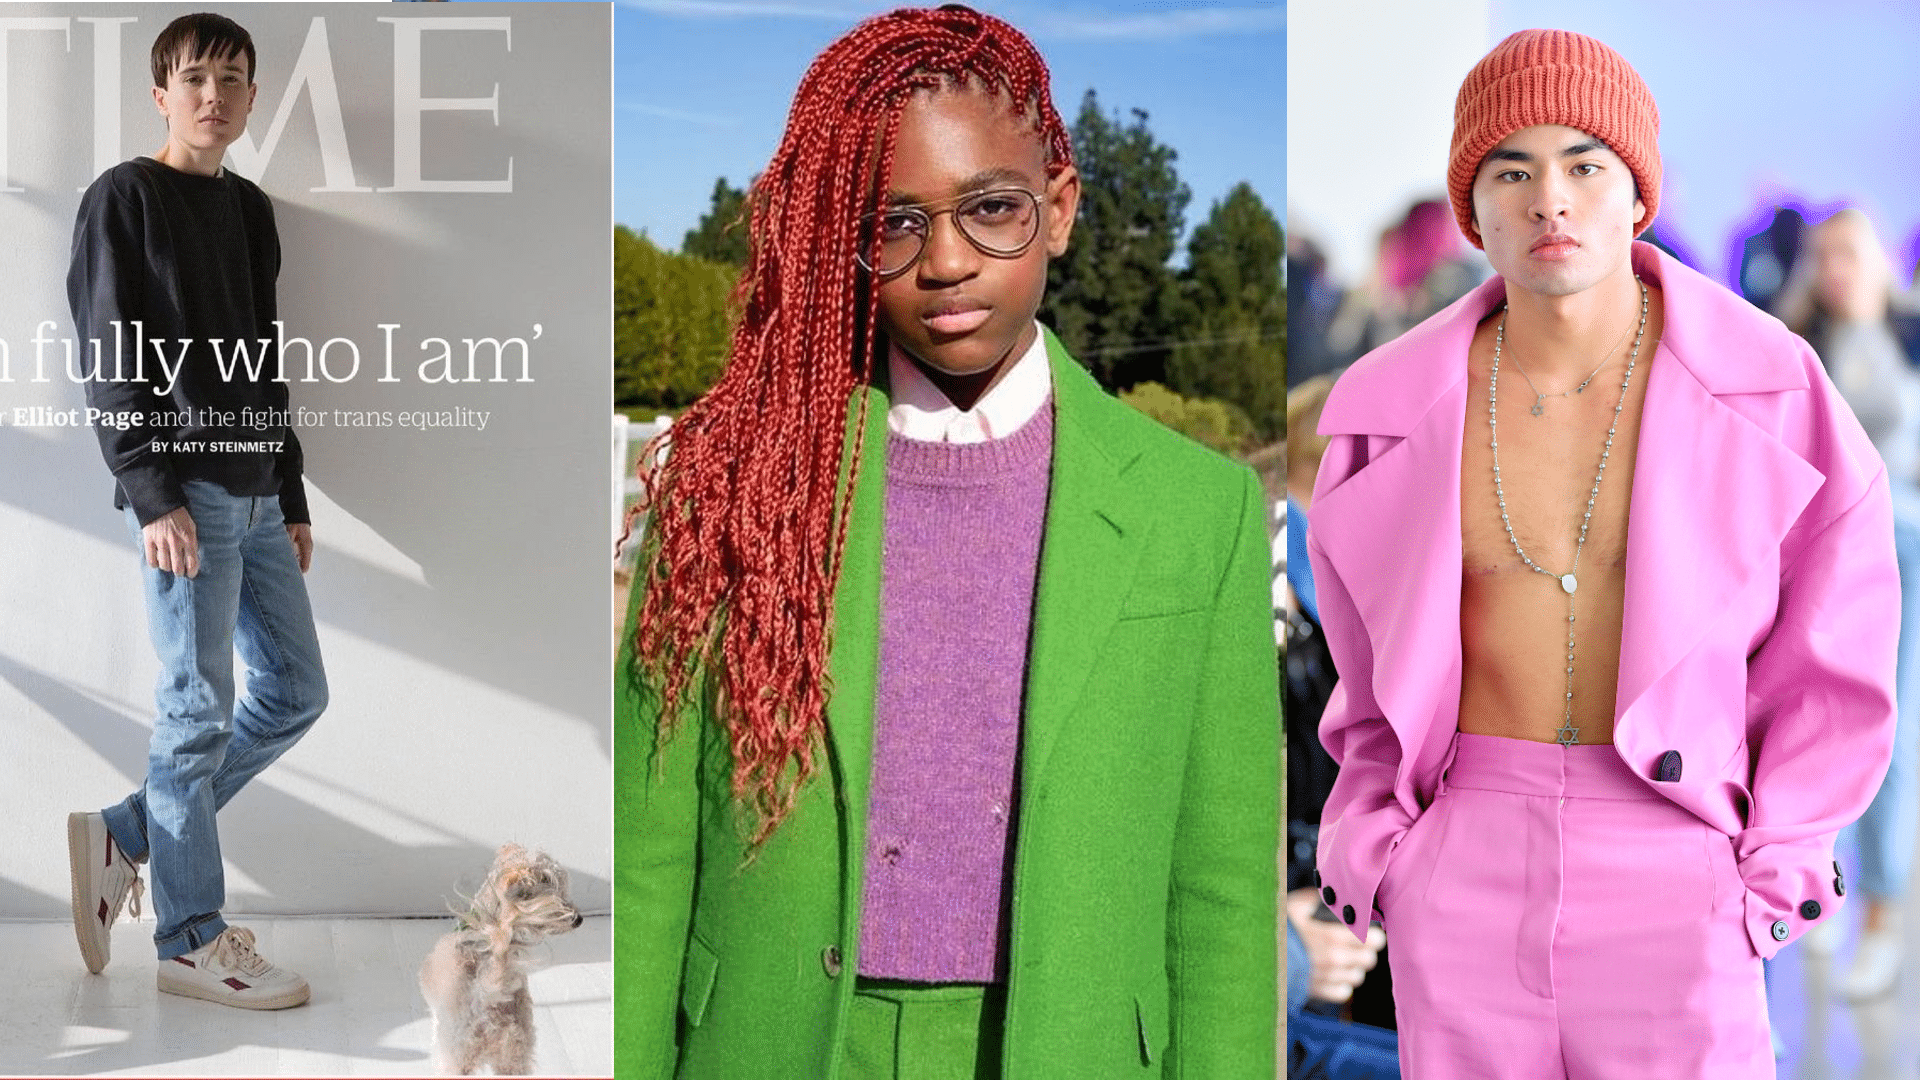 Trans Day of Visibility: 21 trans people making the world a better place